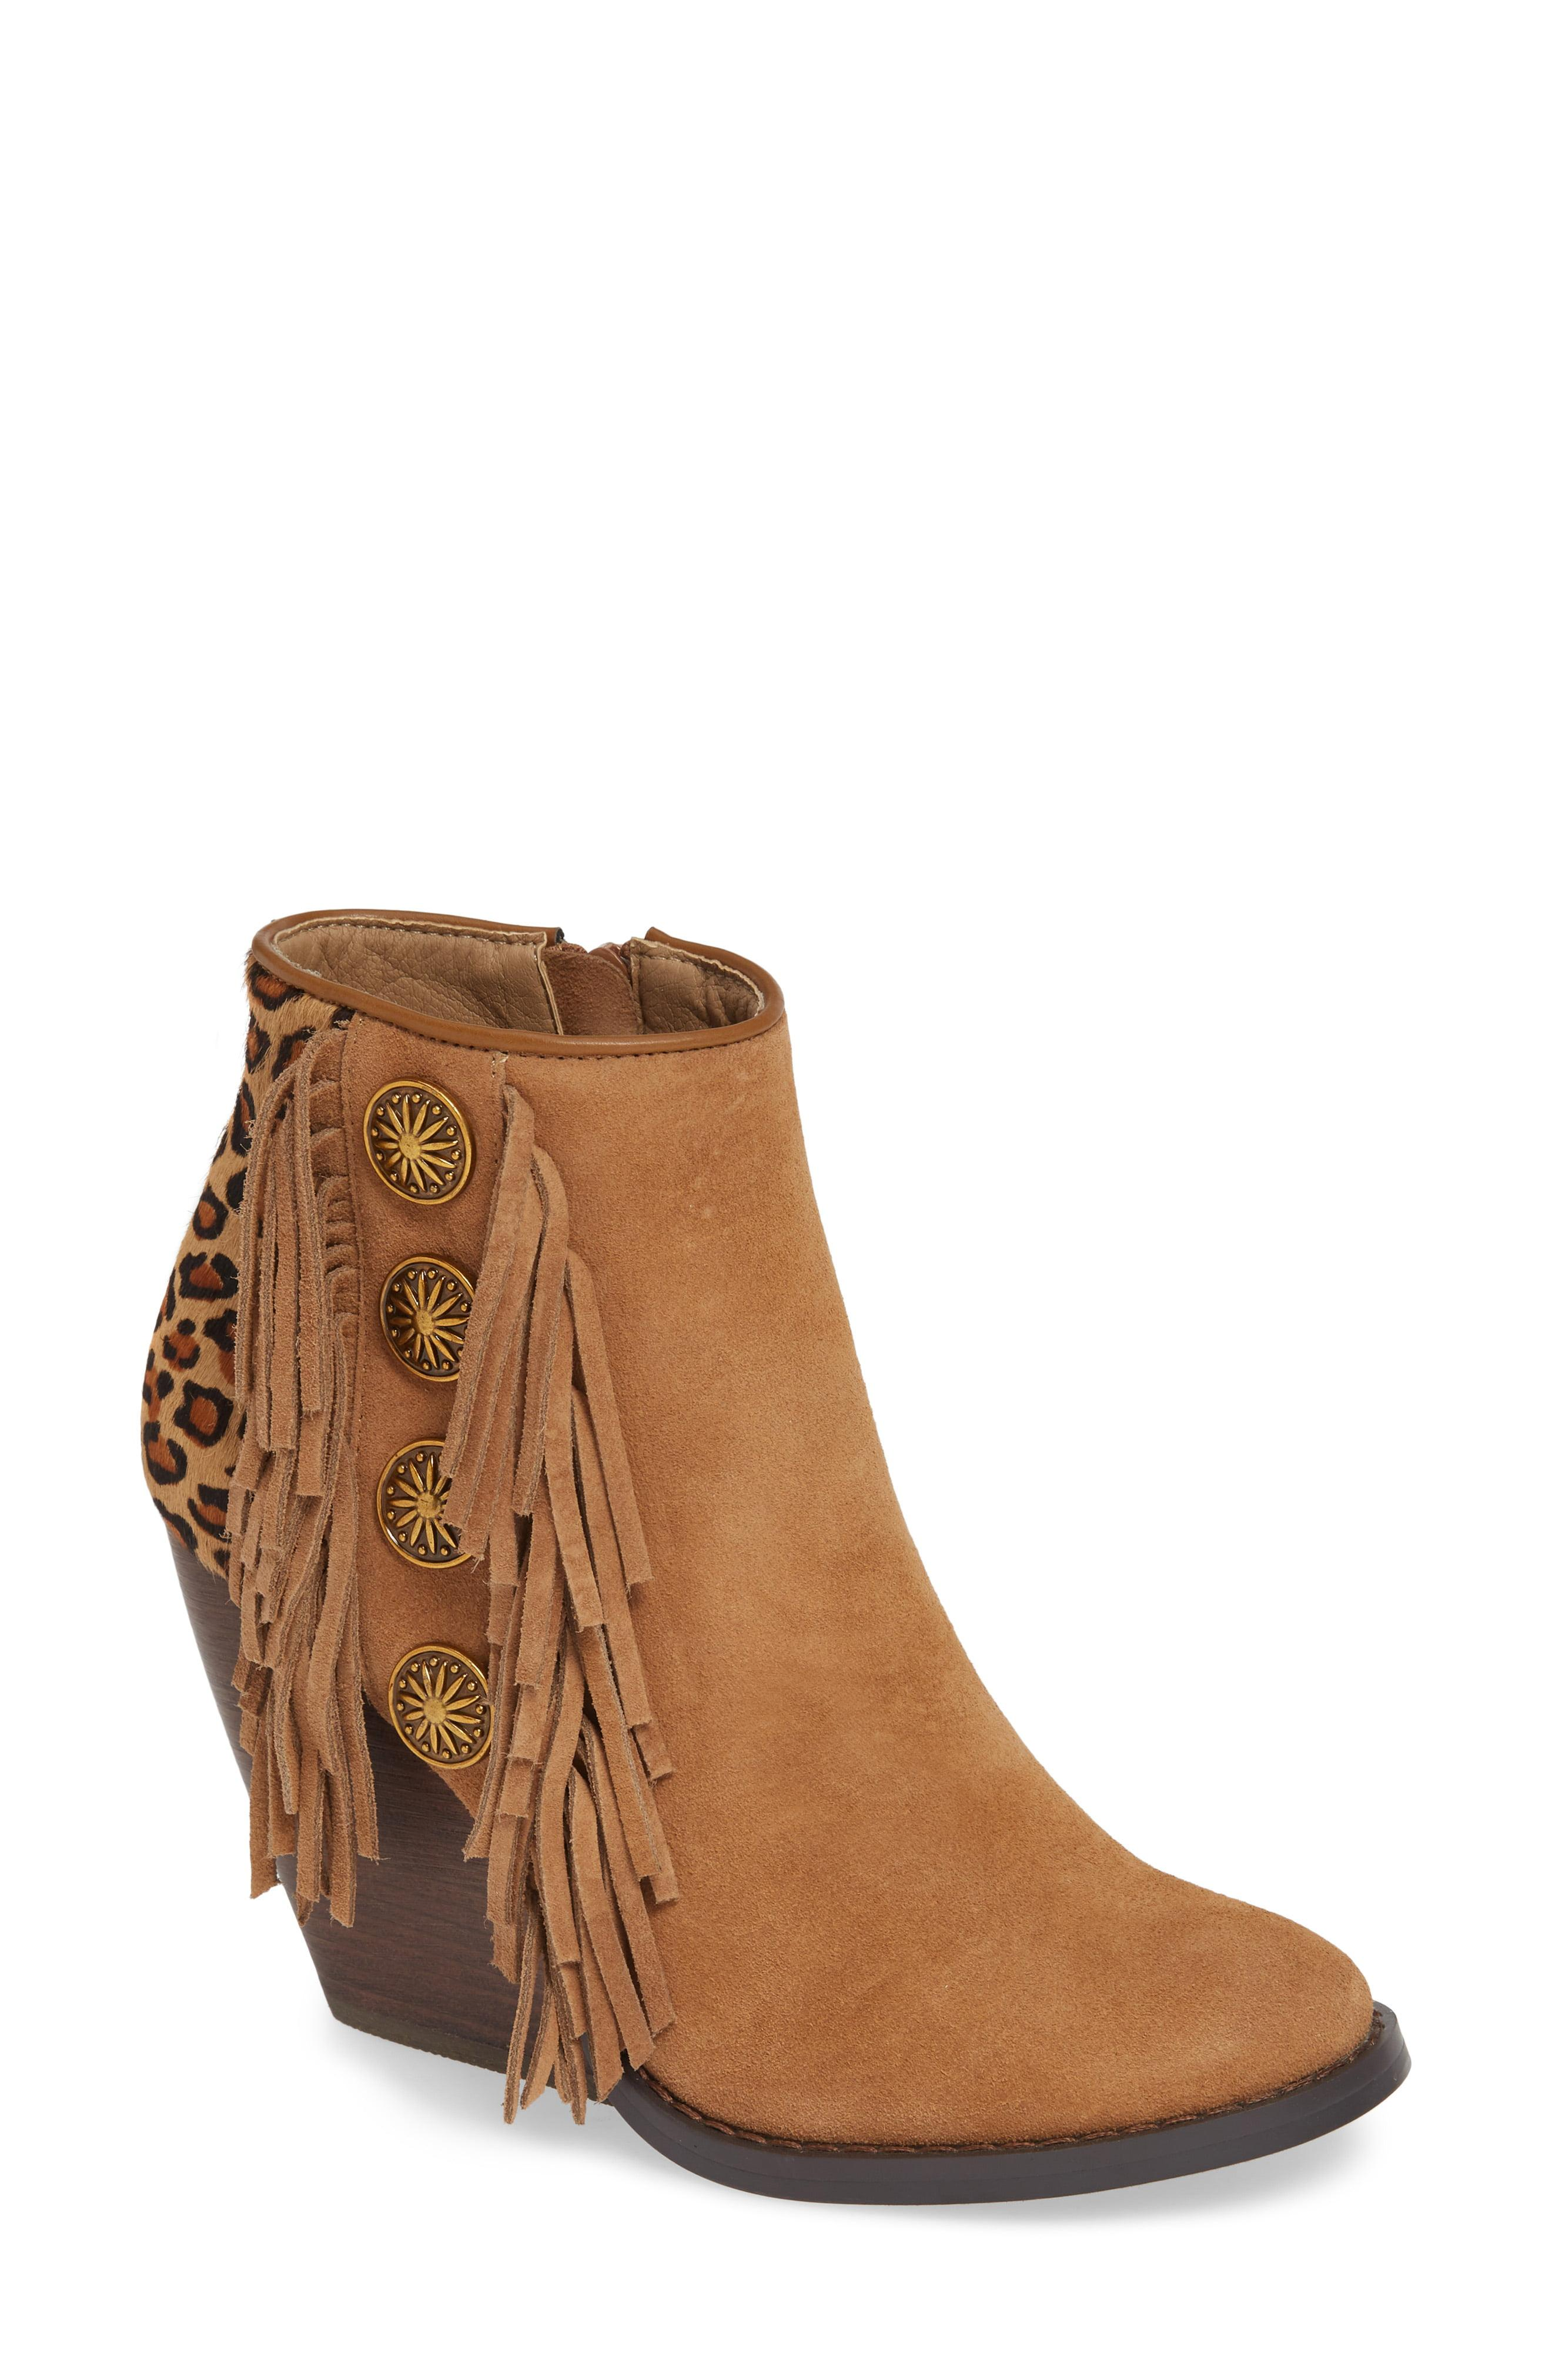 68a9c8e332b2 Lyst - Very Volatile Bellflower Genuine Calf Hair Bootie in Brown